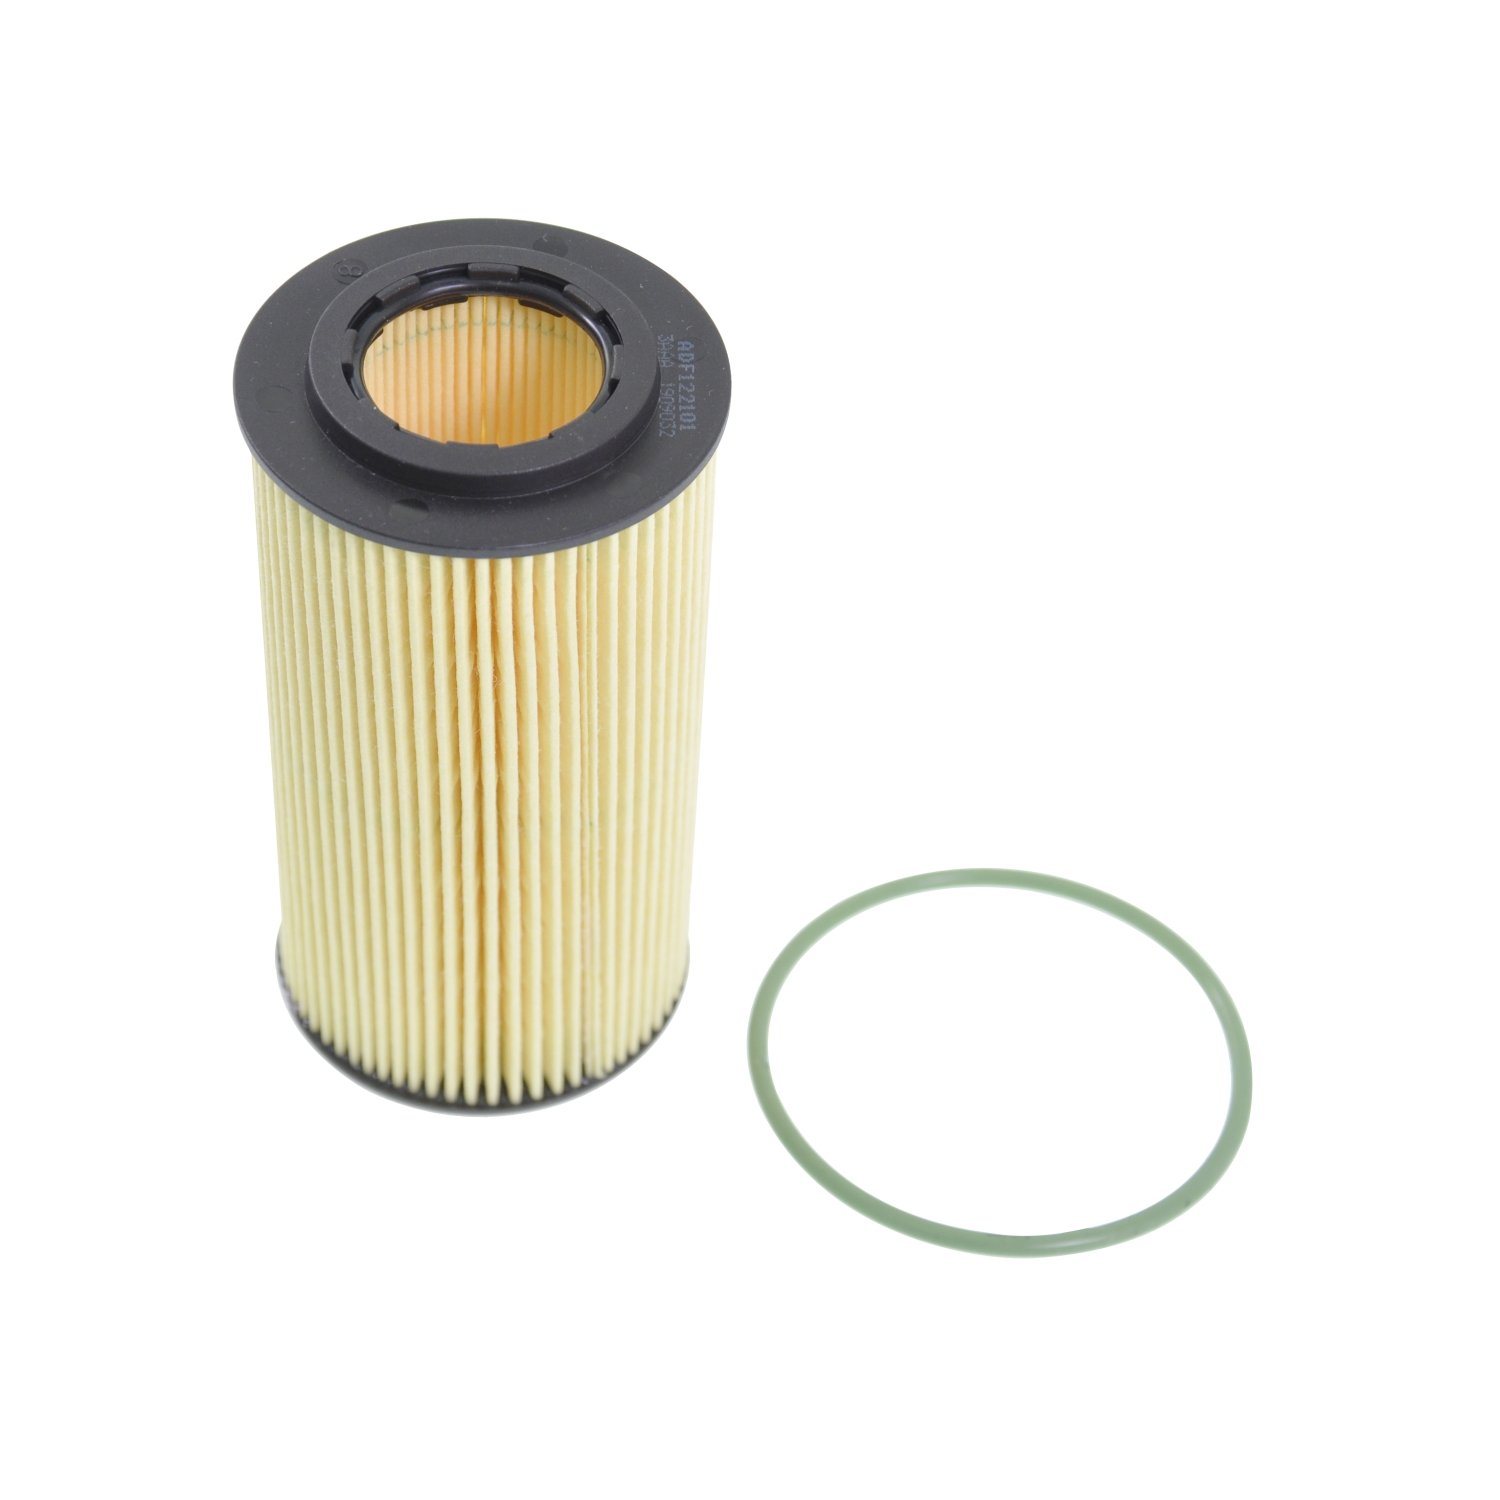 pack of one Blue Print ADG02140 Oil Filter with seal rings